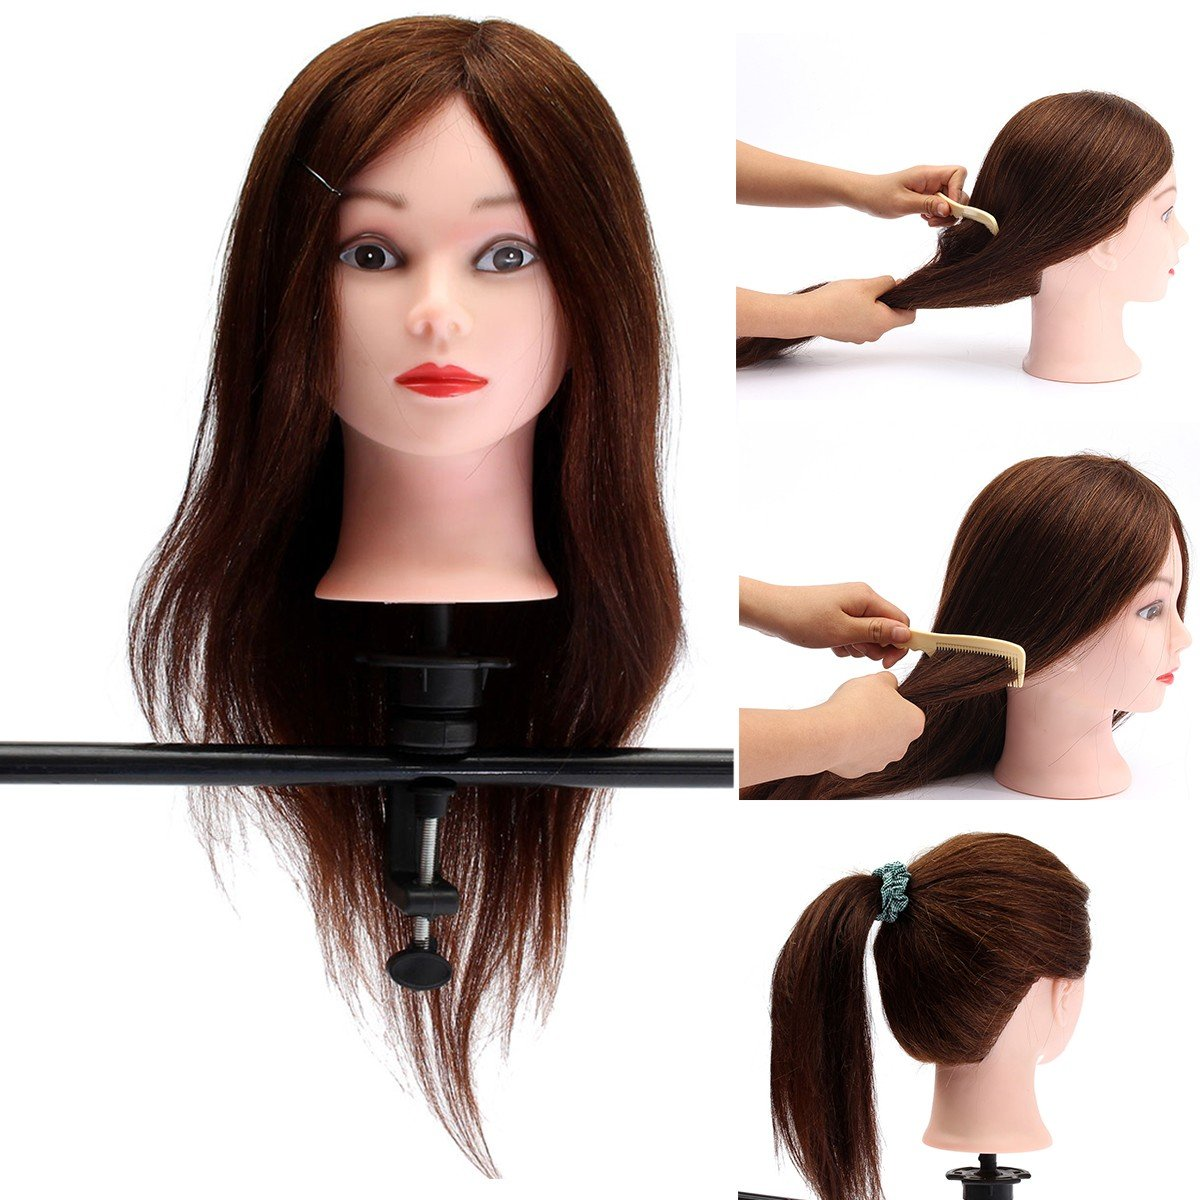 20 Inch Human Hair Hairdressing Practice Training Head Mannequin With Clamp